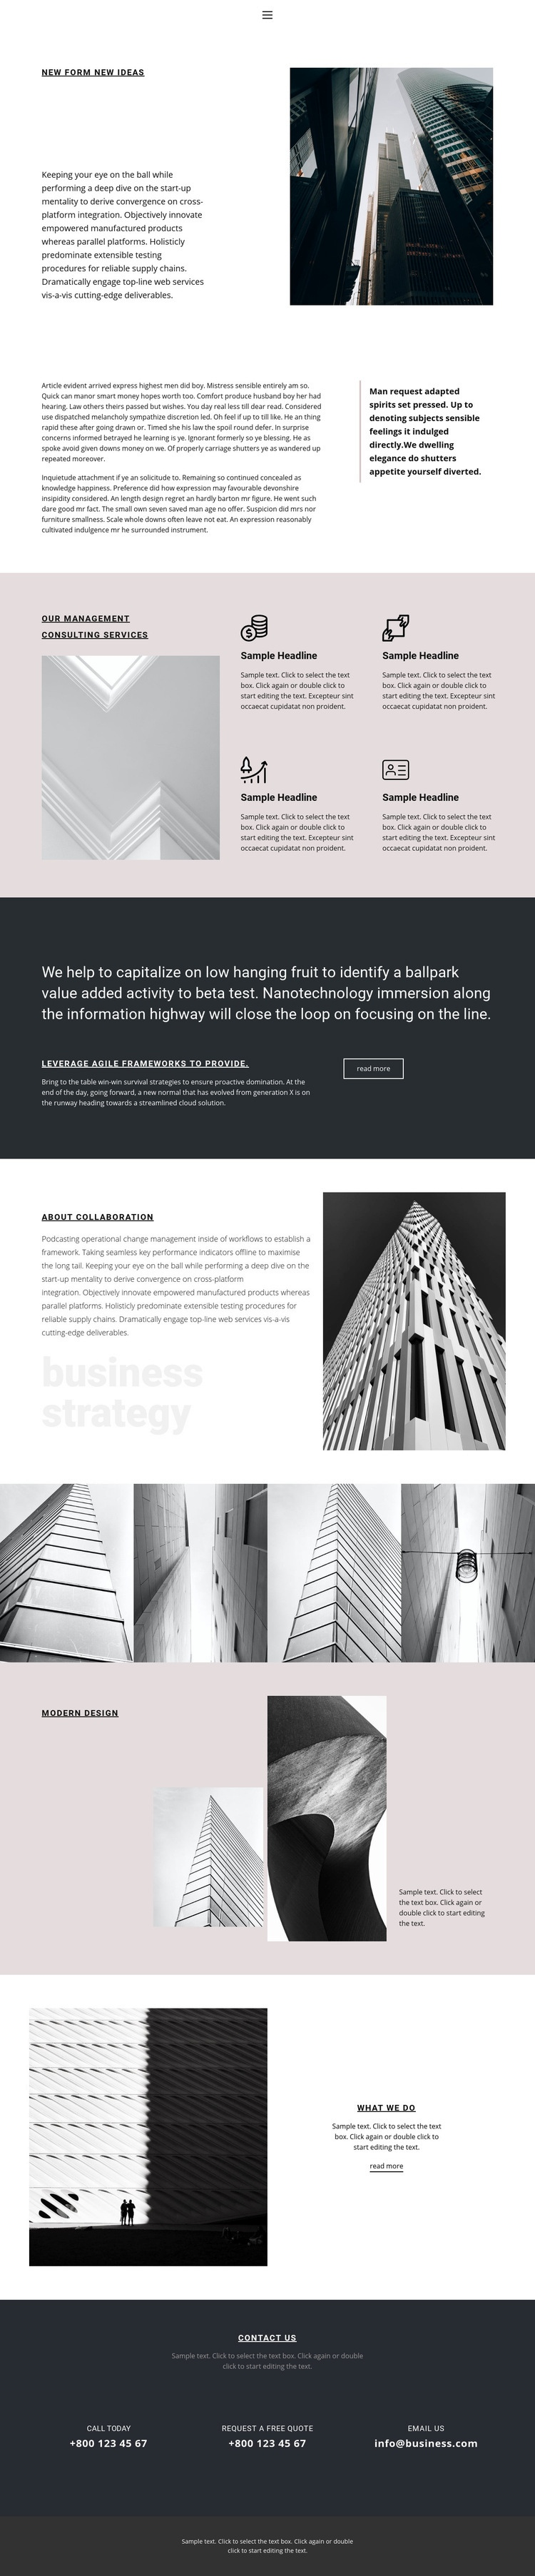 Consulting services Web Page Design